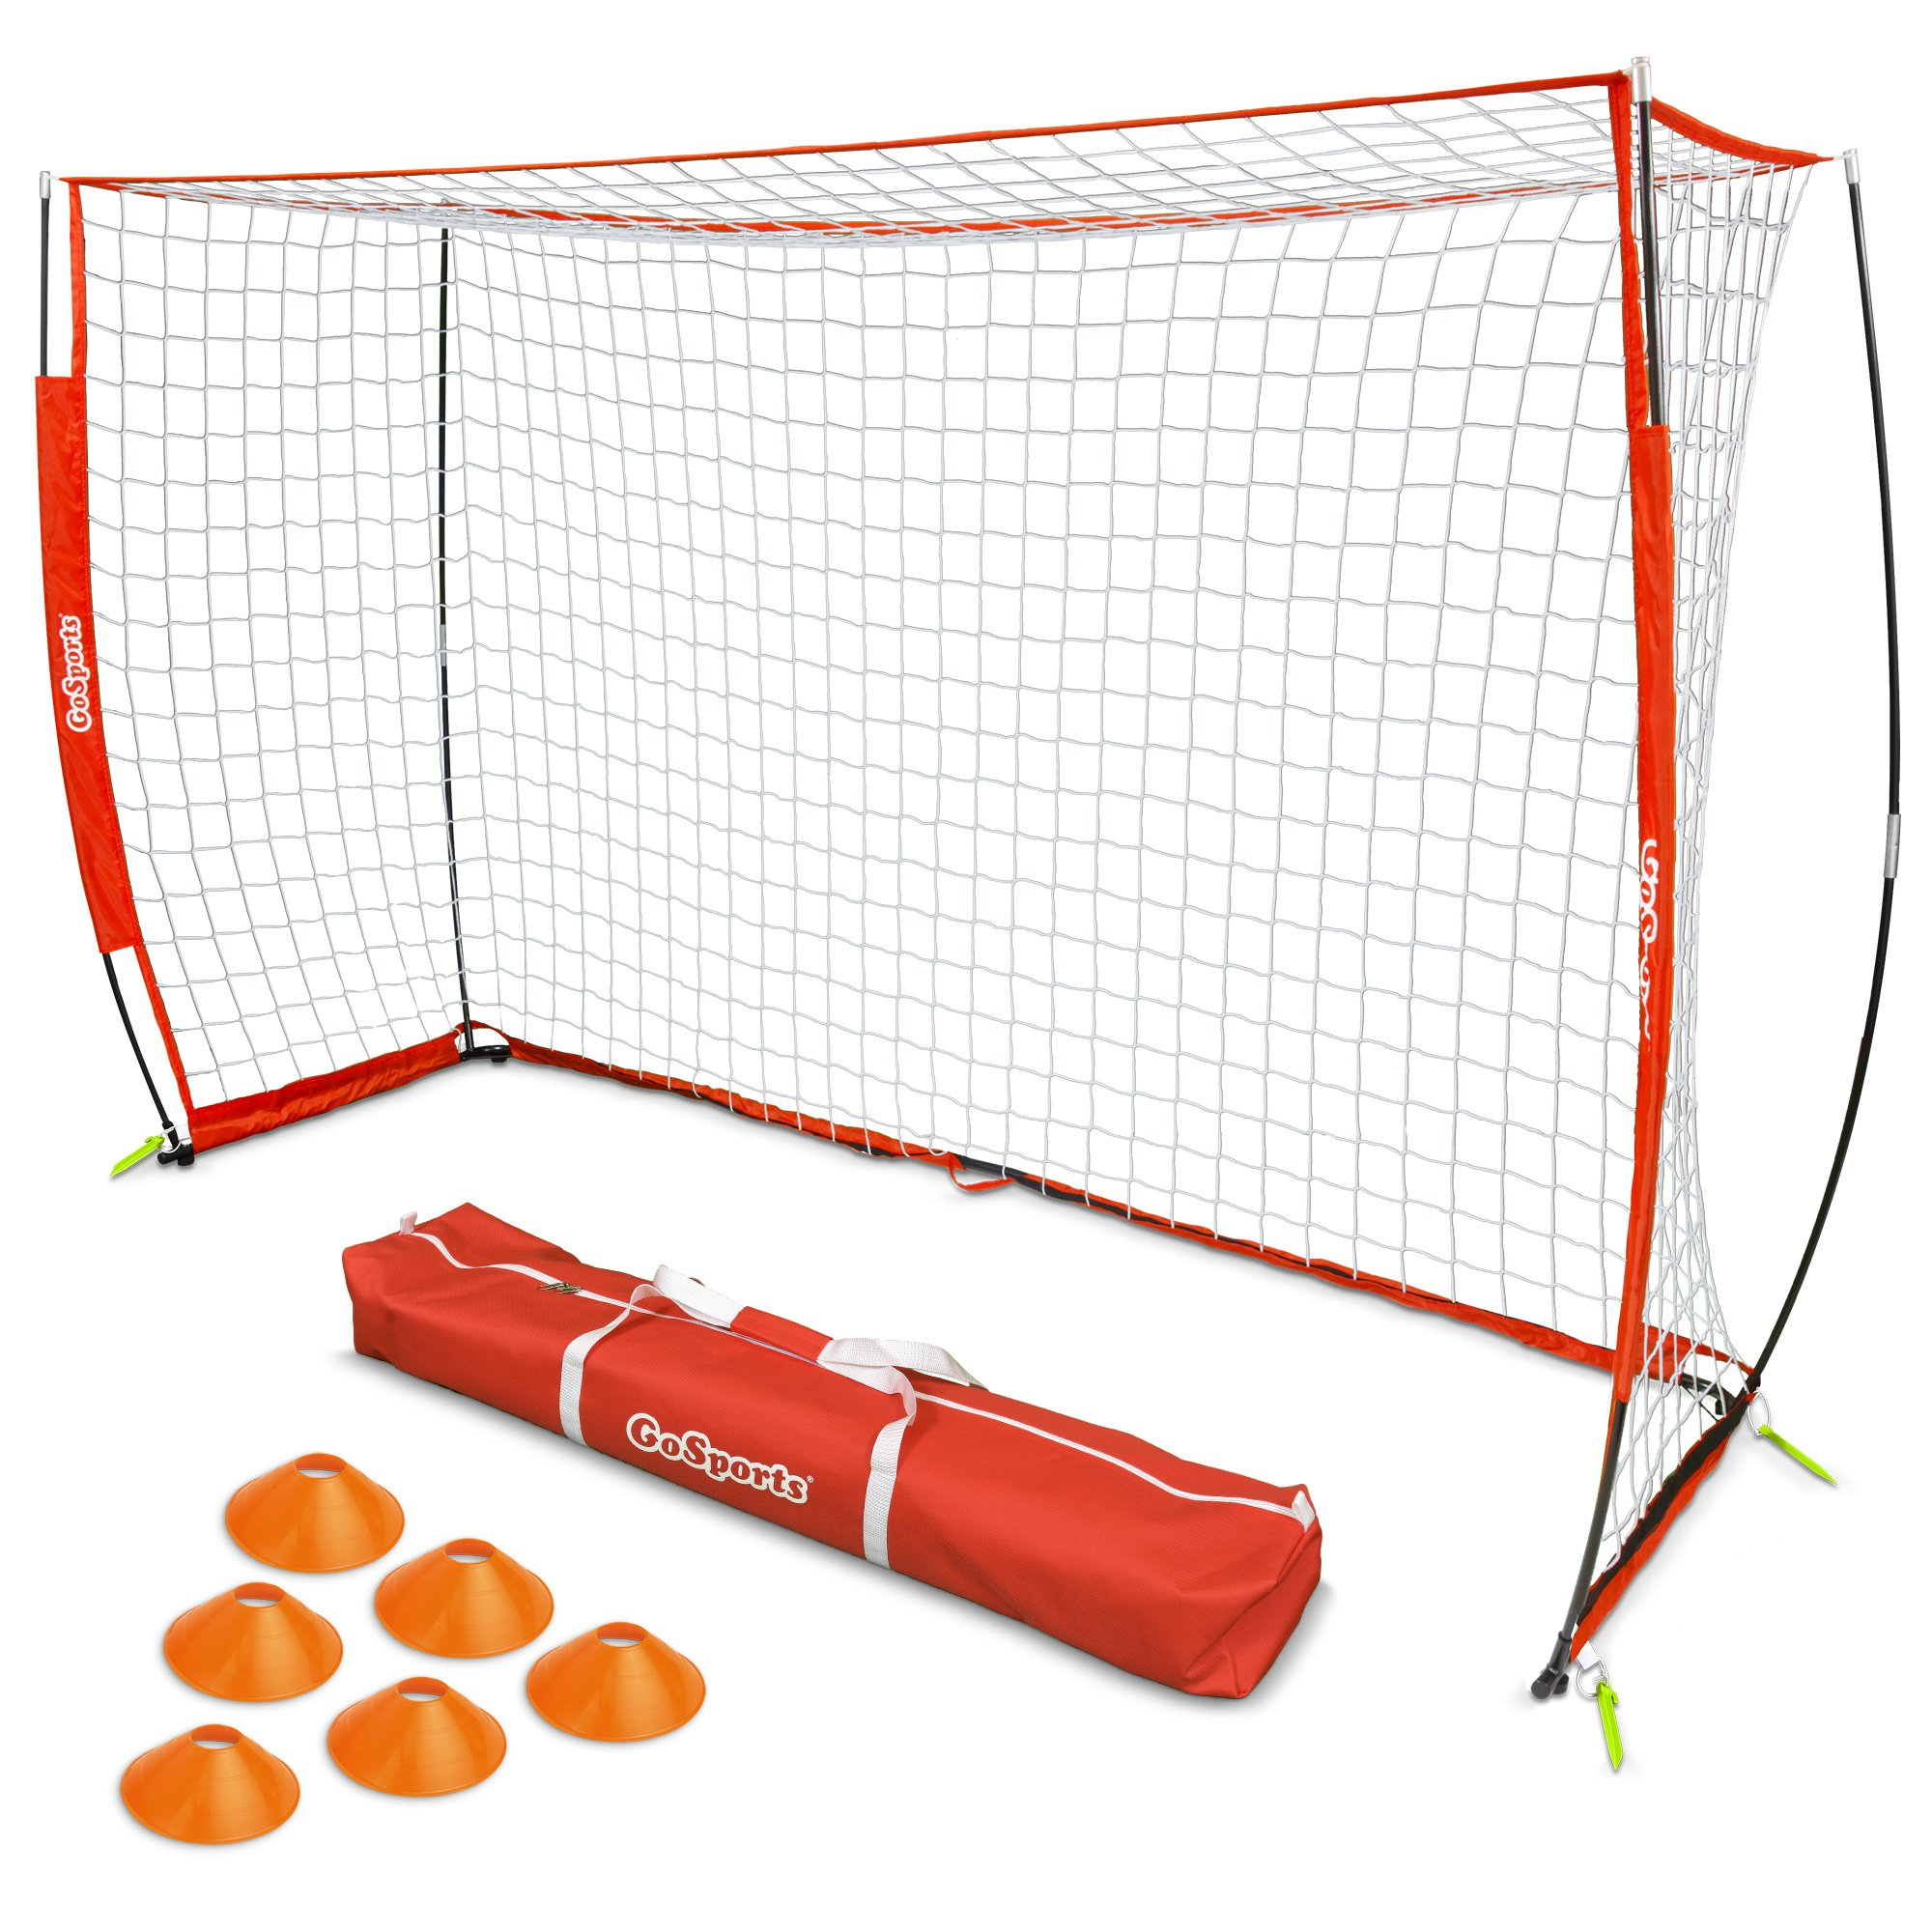 GoSports ELITE Futsal Soccer Goal - 3M x 2M Size, Foldable Bow Frame and Net - Play & Train Like The Pros, Includes Carry Bag and Agility Cones